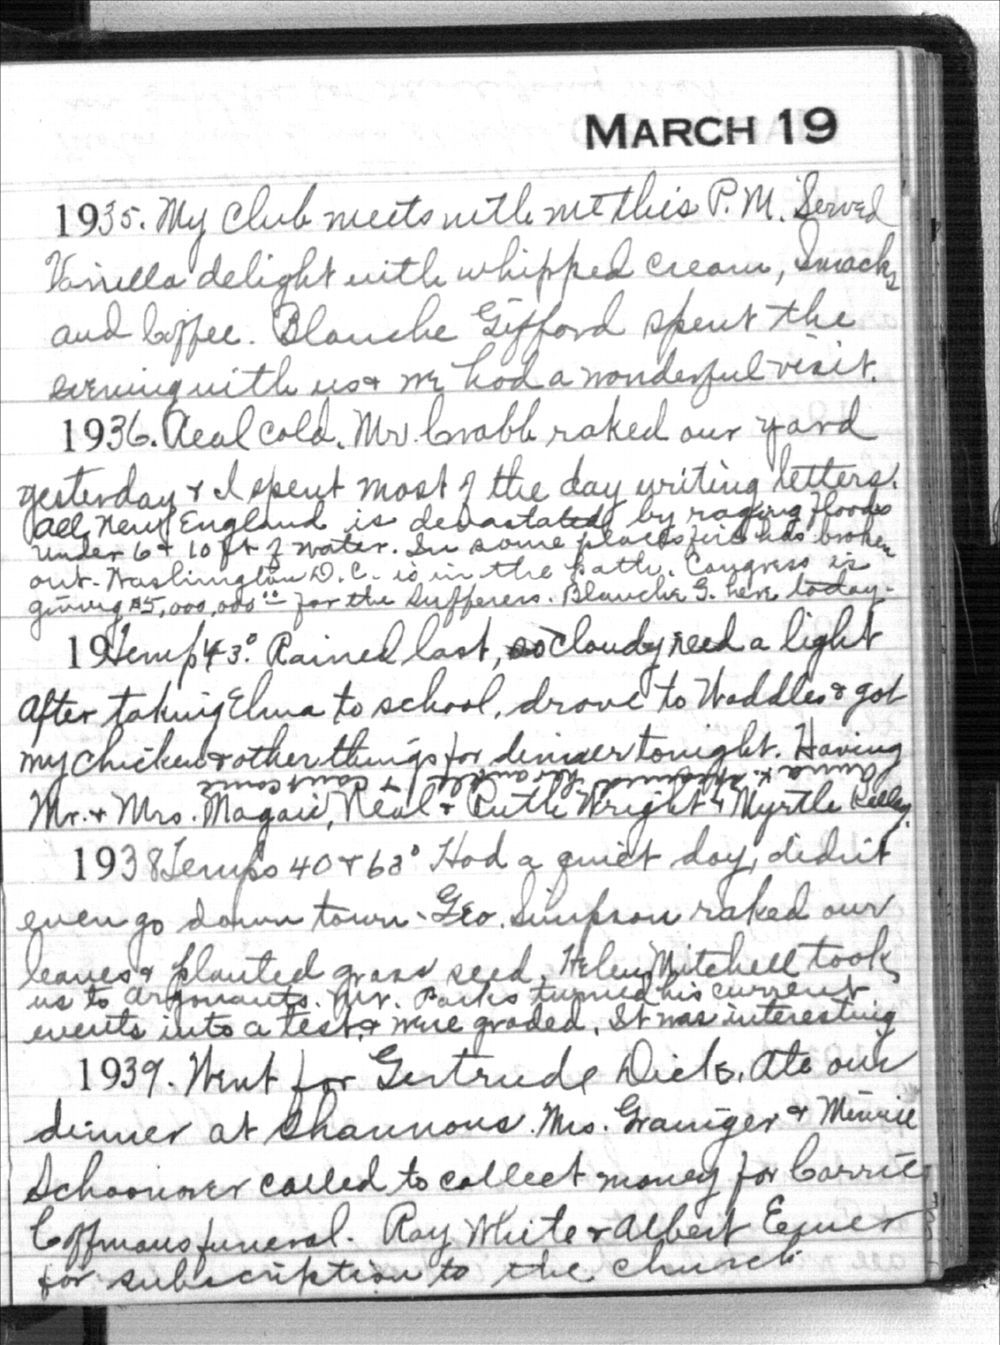 Mabel Holmes diary entries - March 19